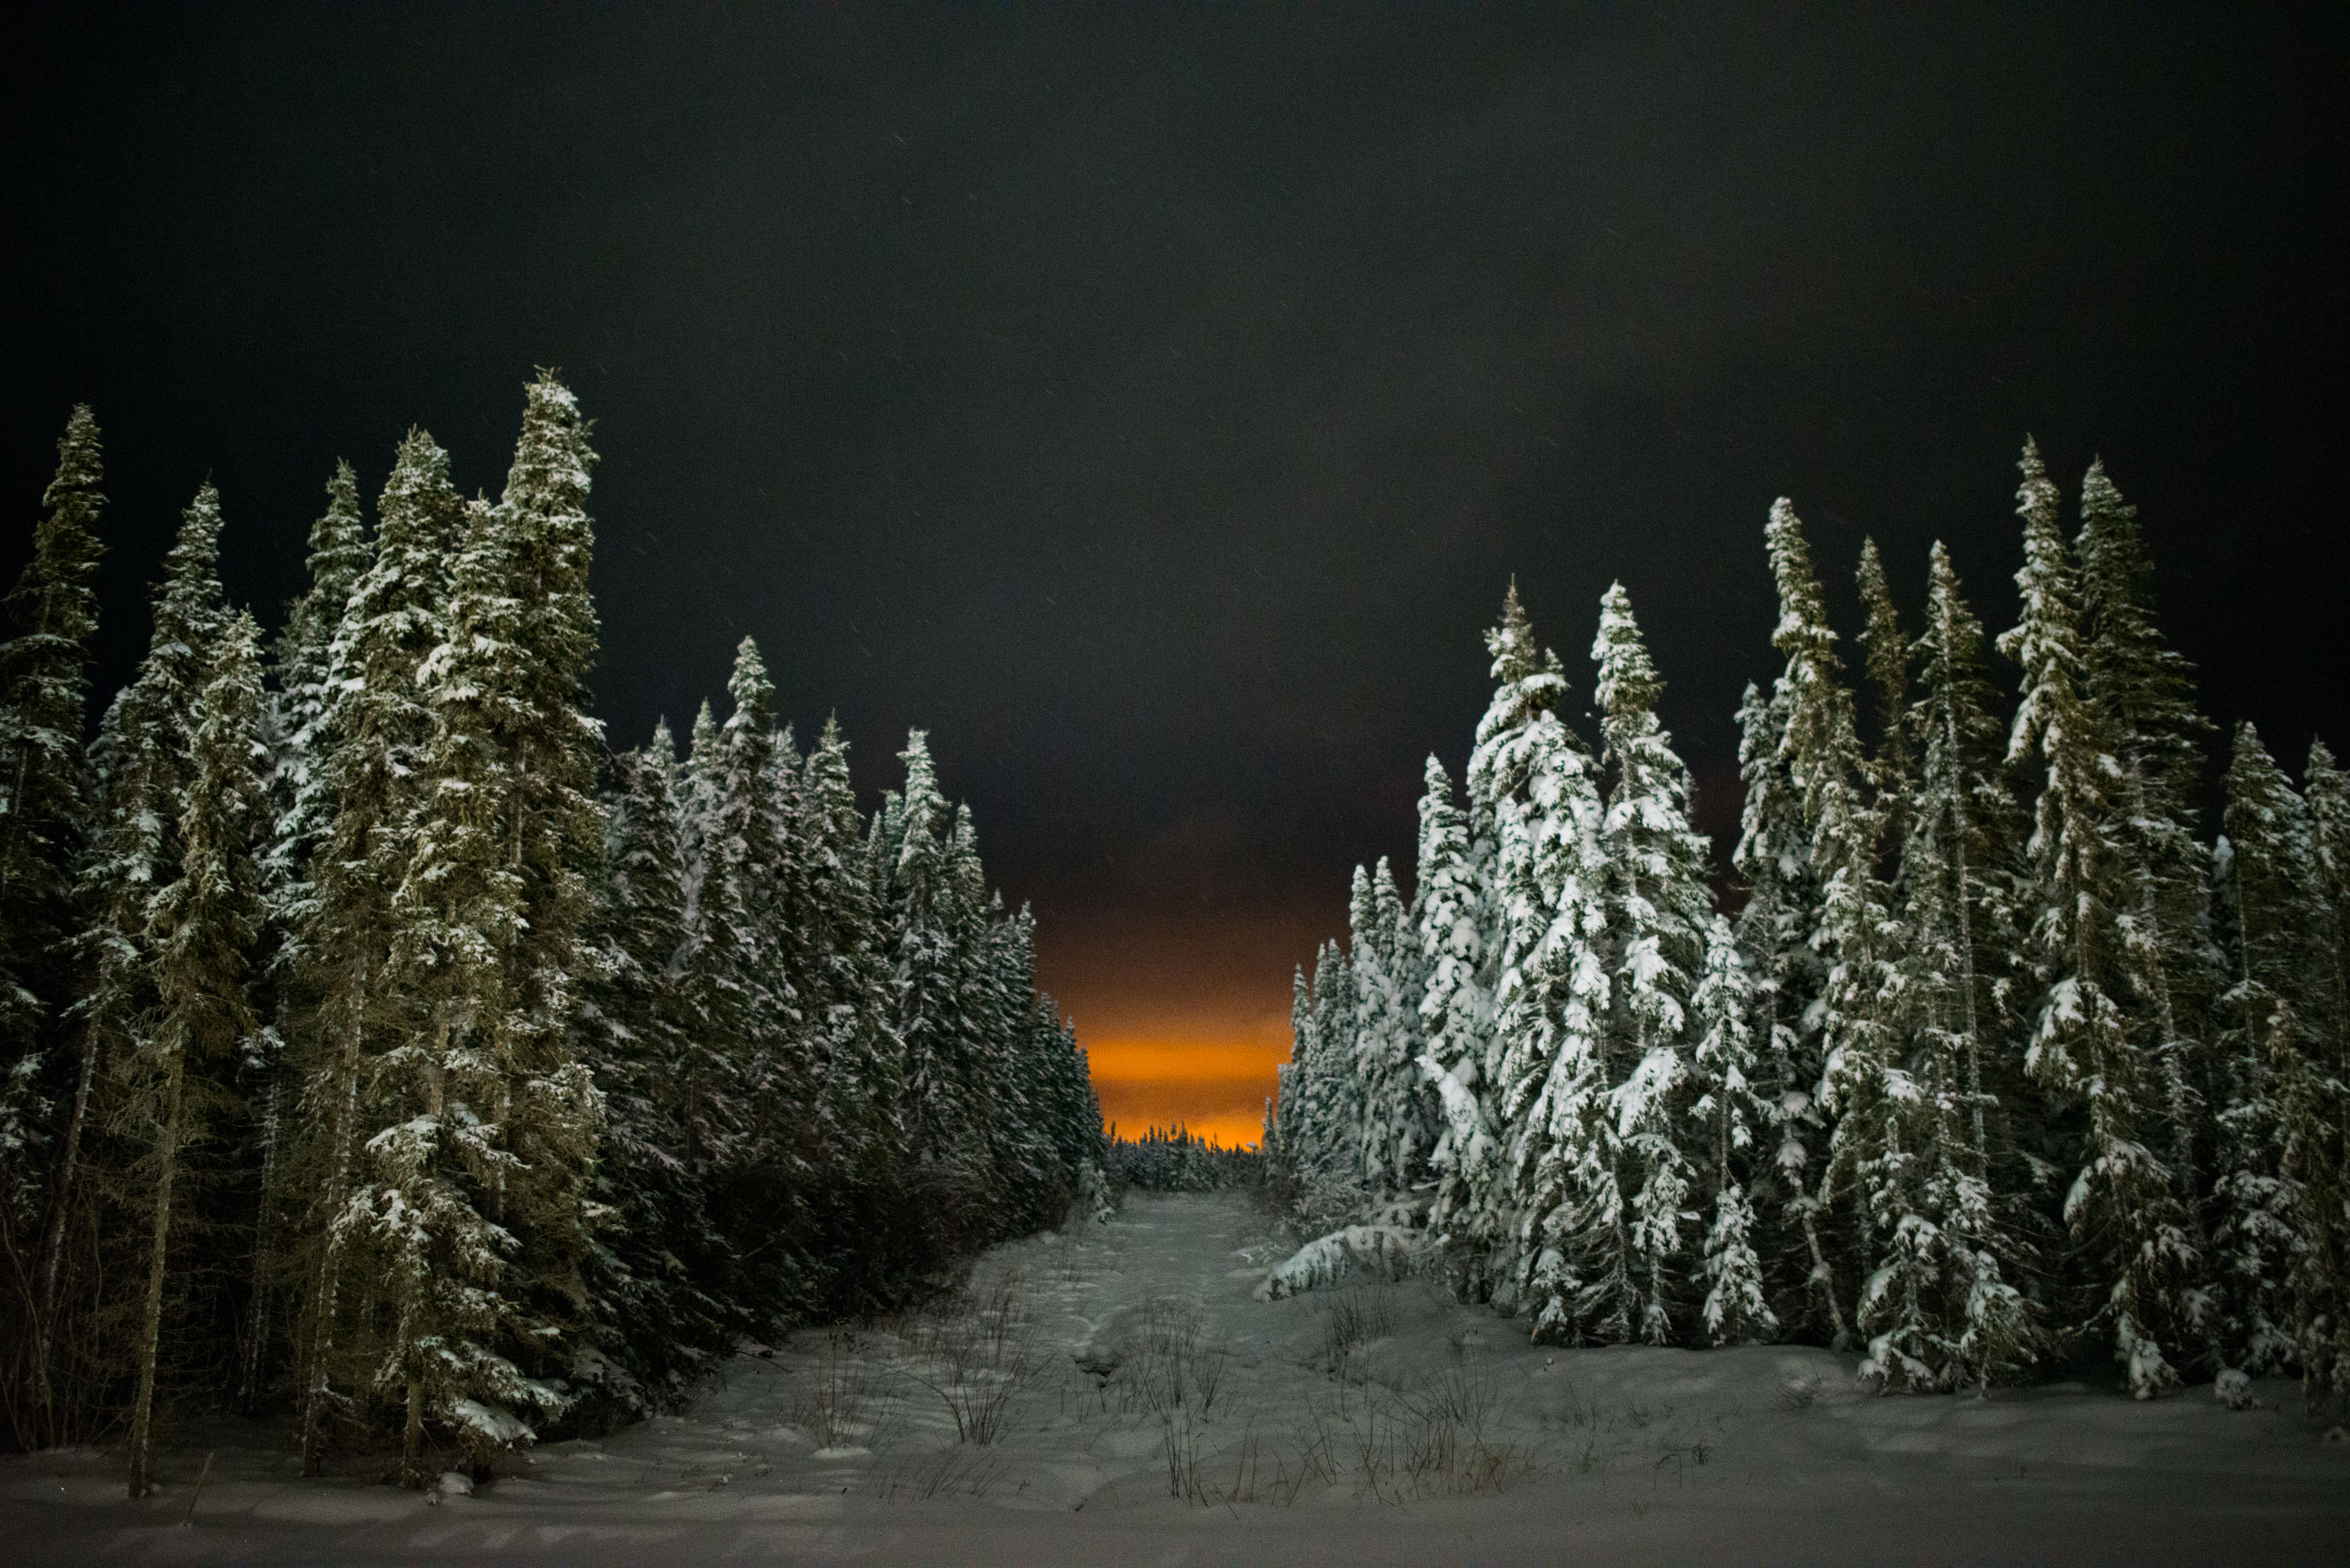 Lights from a Shell oil sands development seen through Boreal Forest, near Fort McKay.